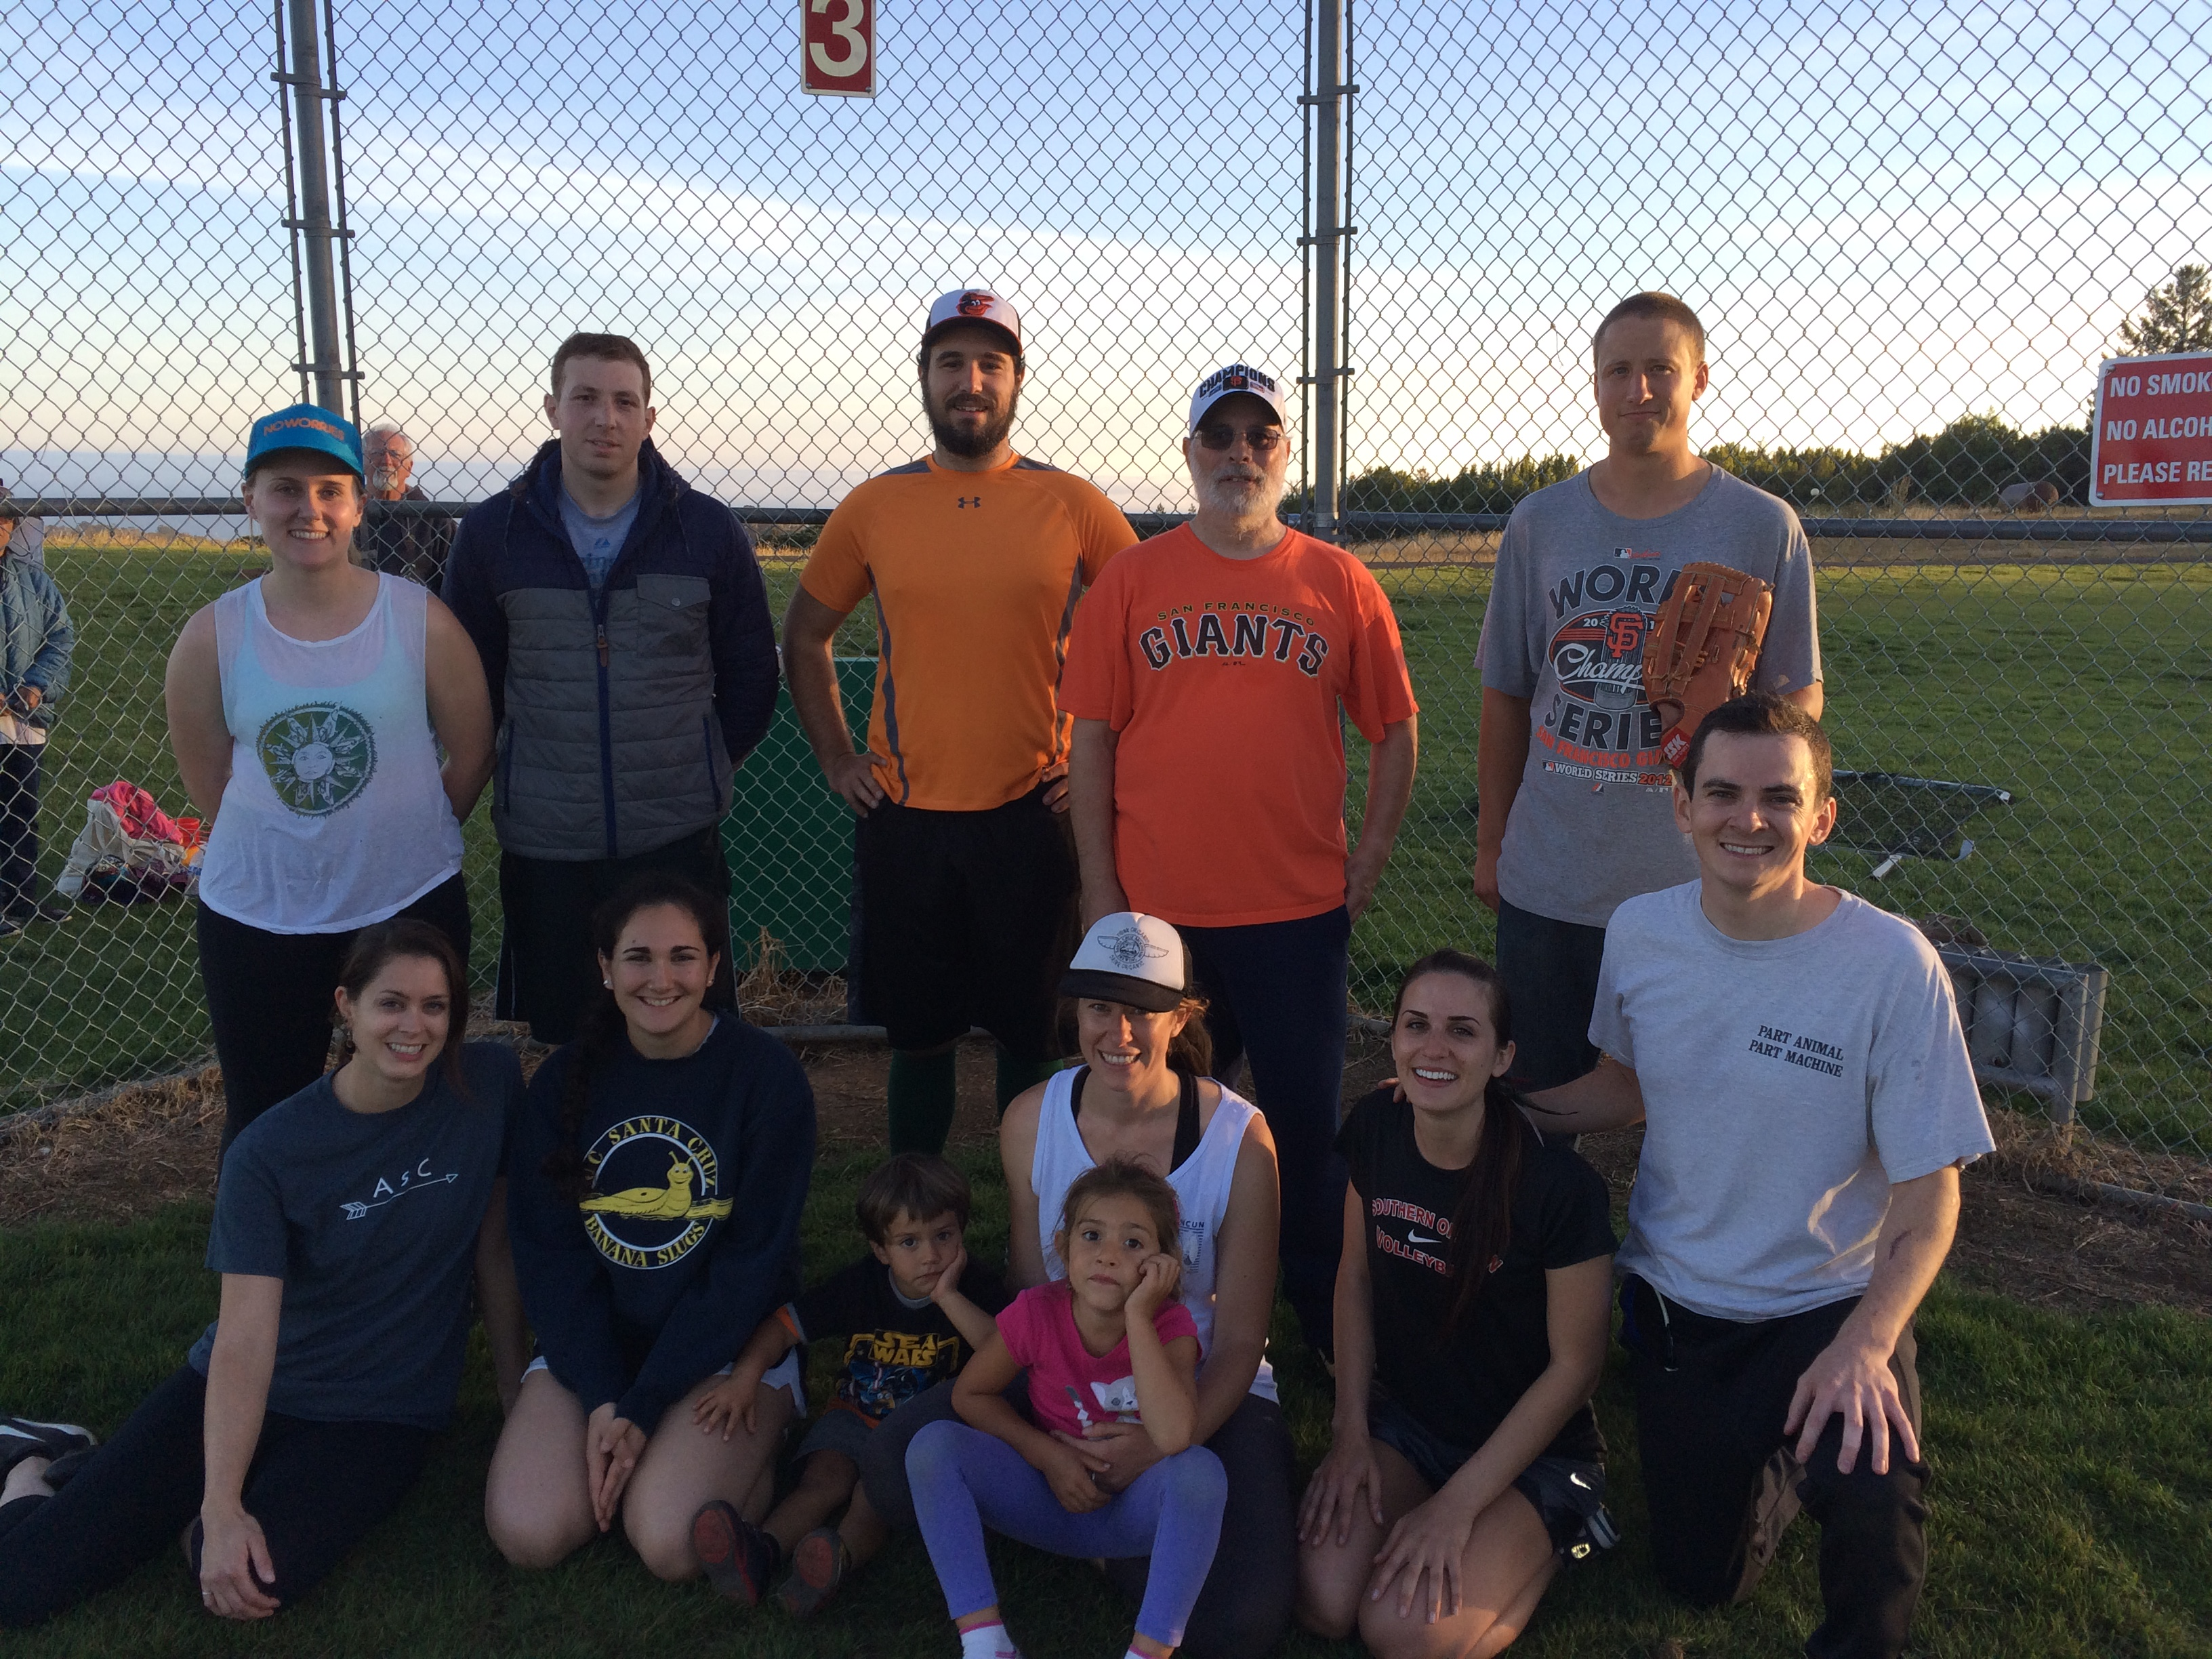 Spring 2015 Coed Softball Team